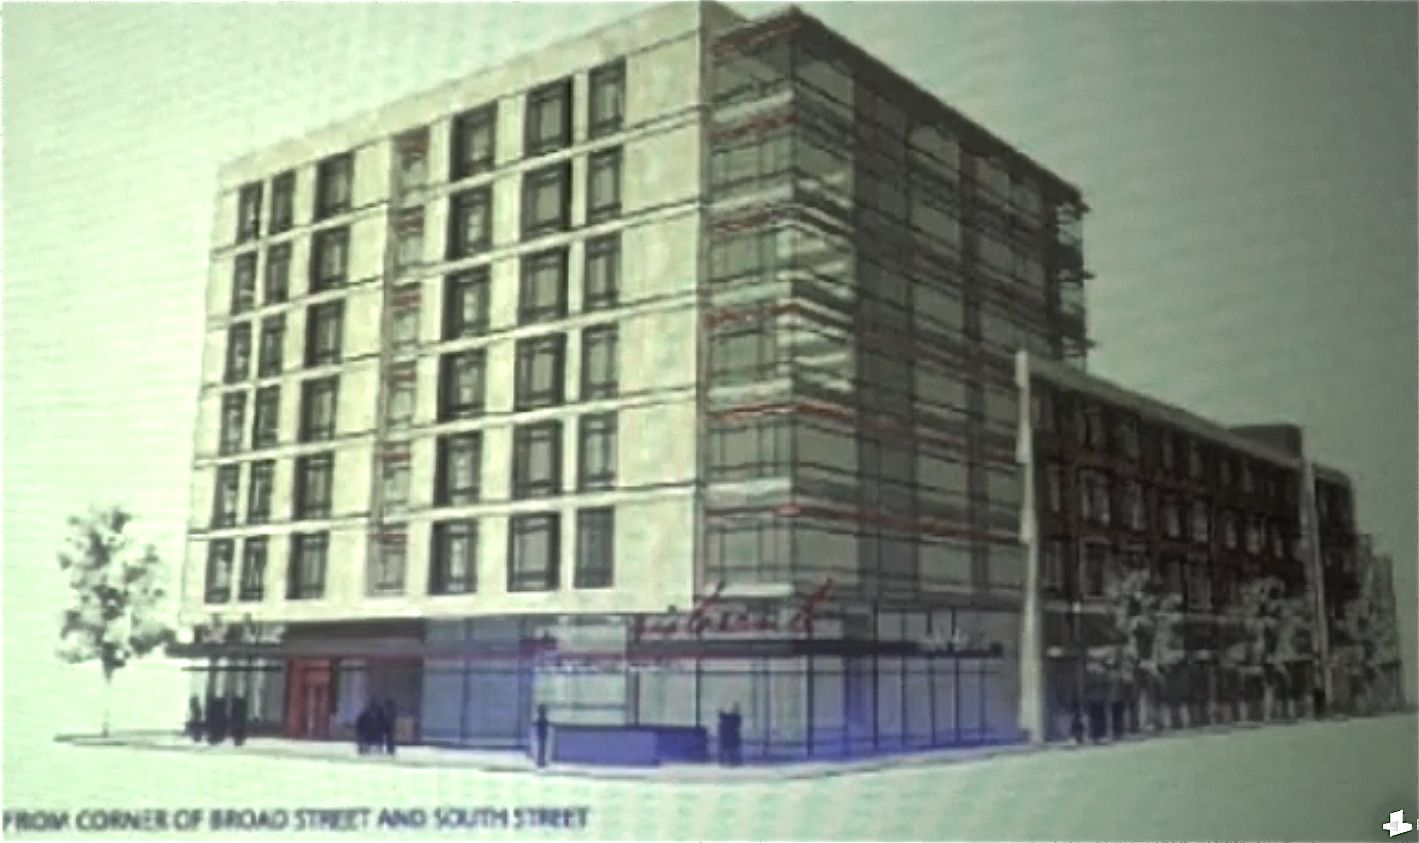 Dranoff transit-oriented development for South and Broad clears first planning commission hurdle